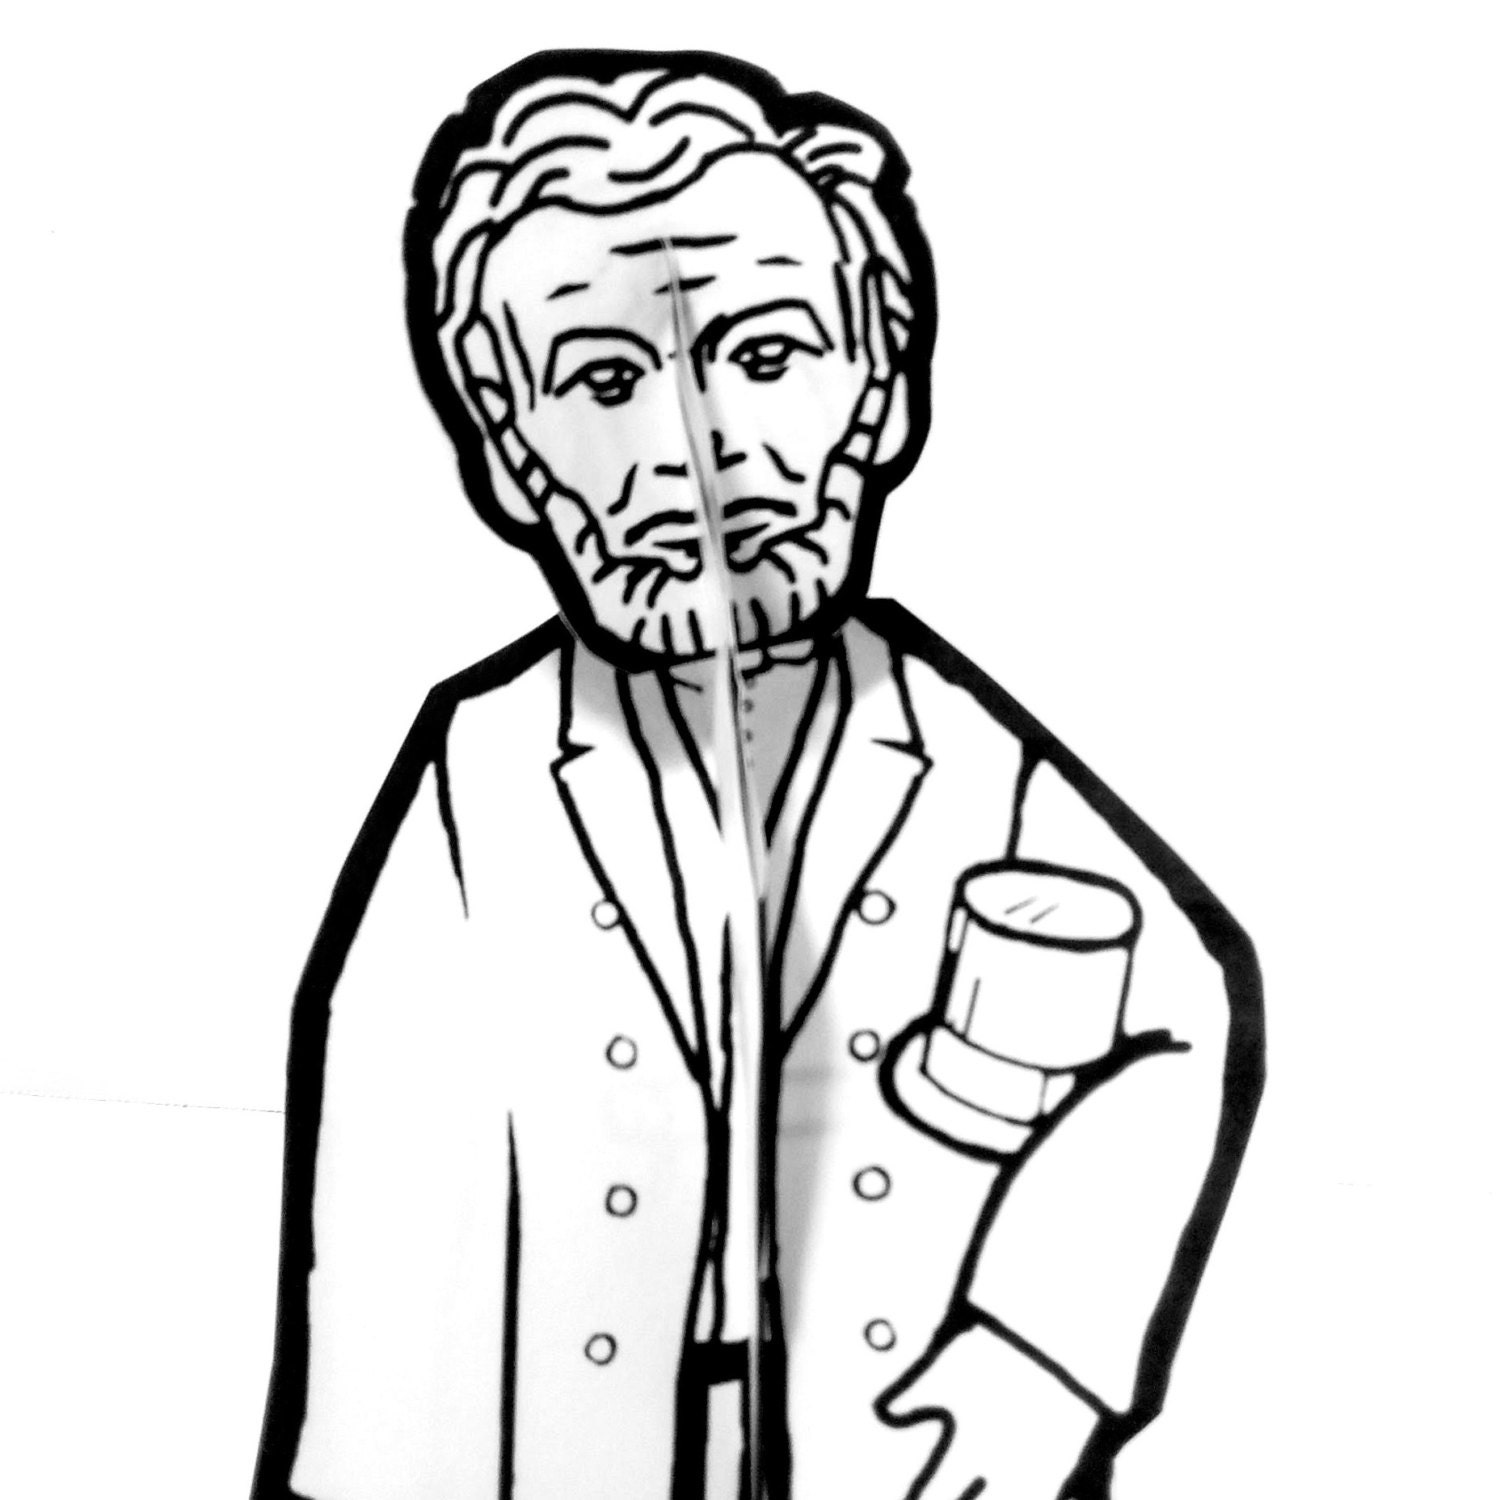 honest abe coloring pages - photo#19